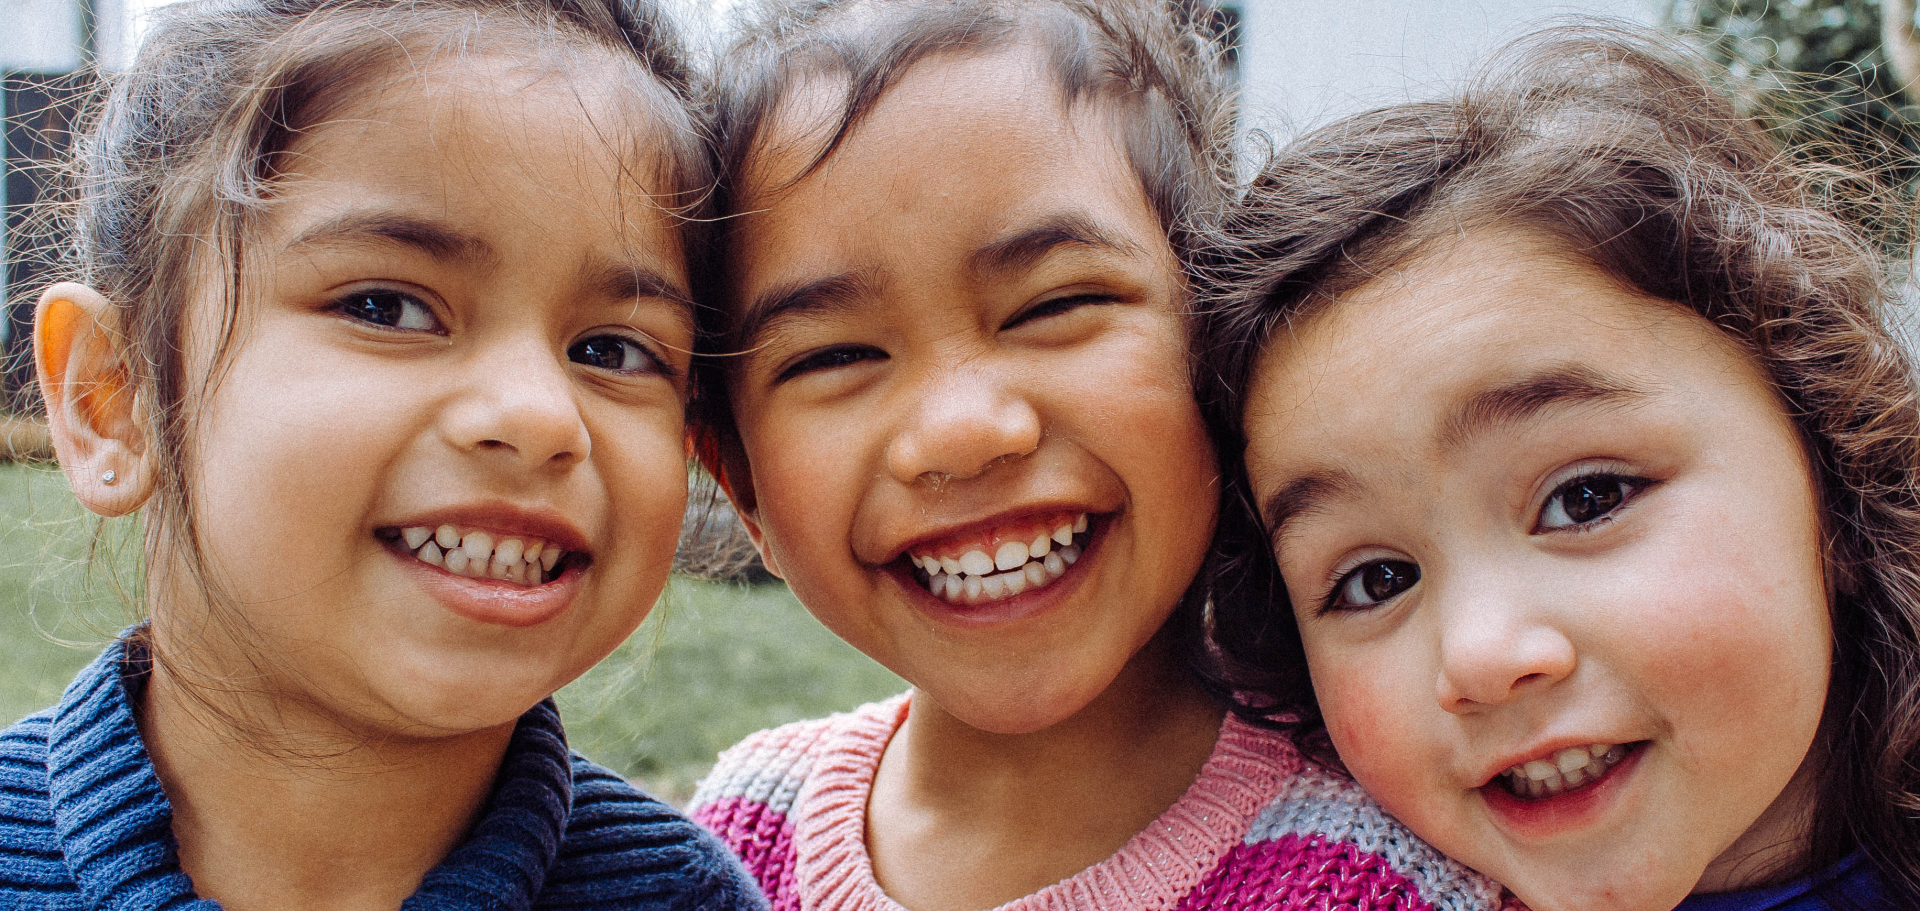 Three happy, smiling kids with their heads together.